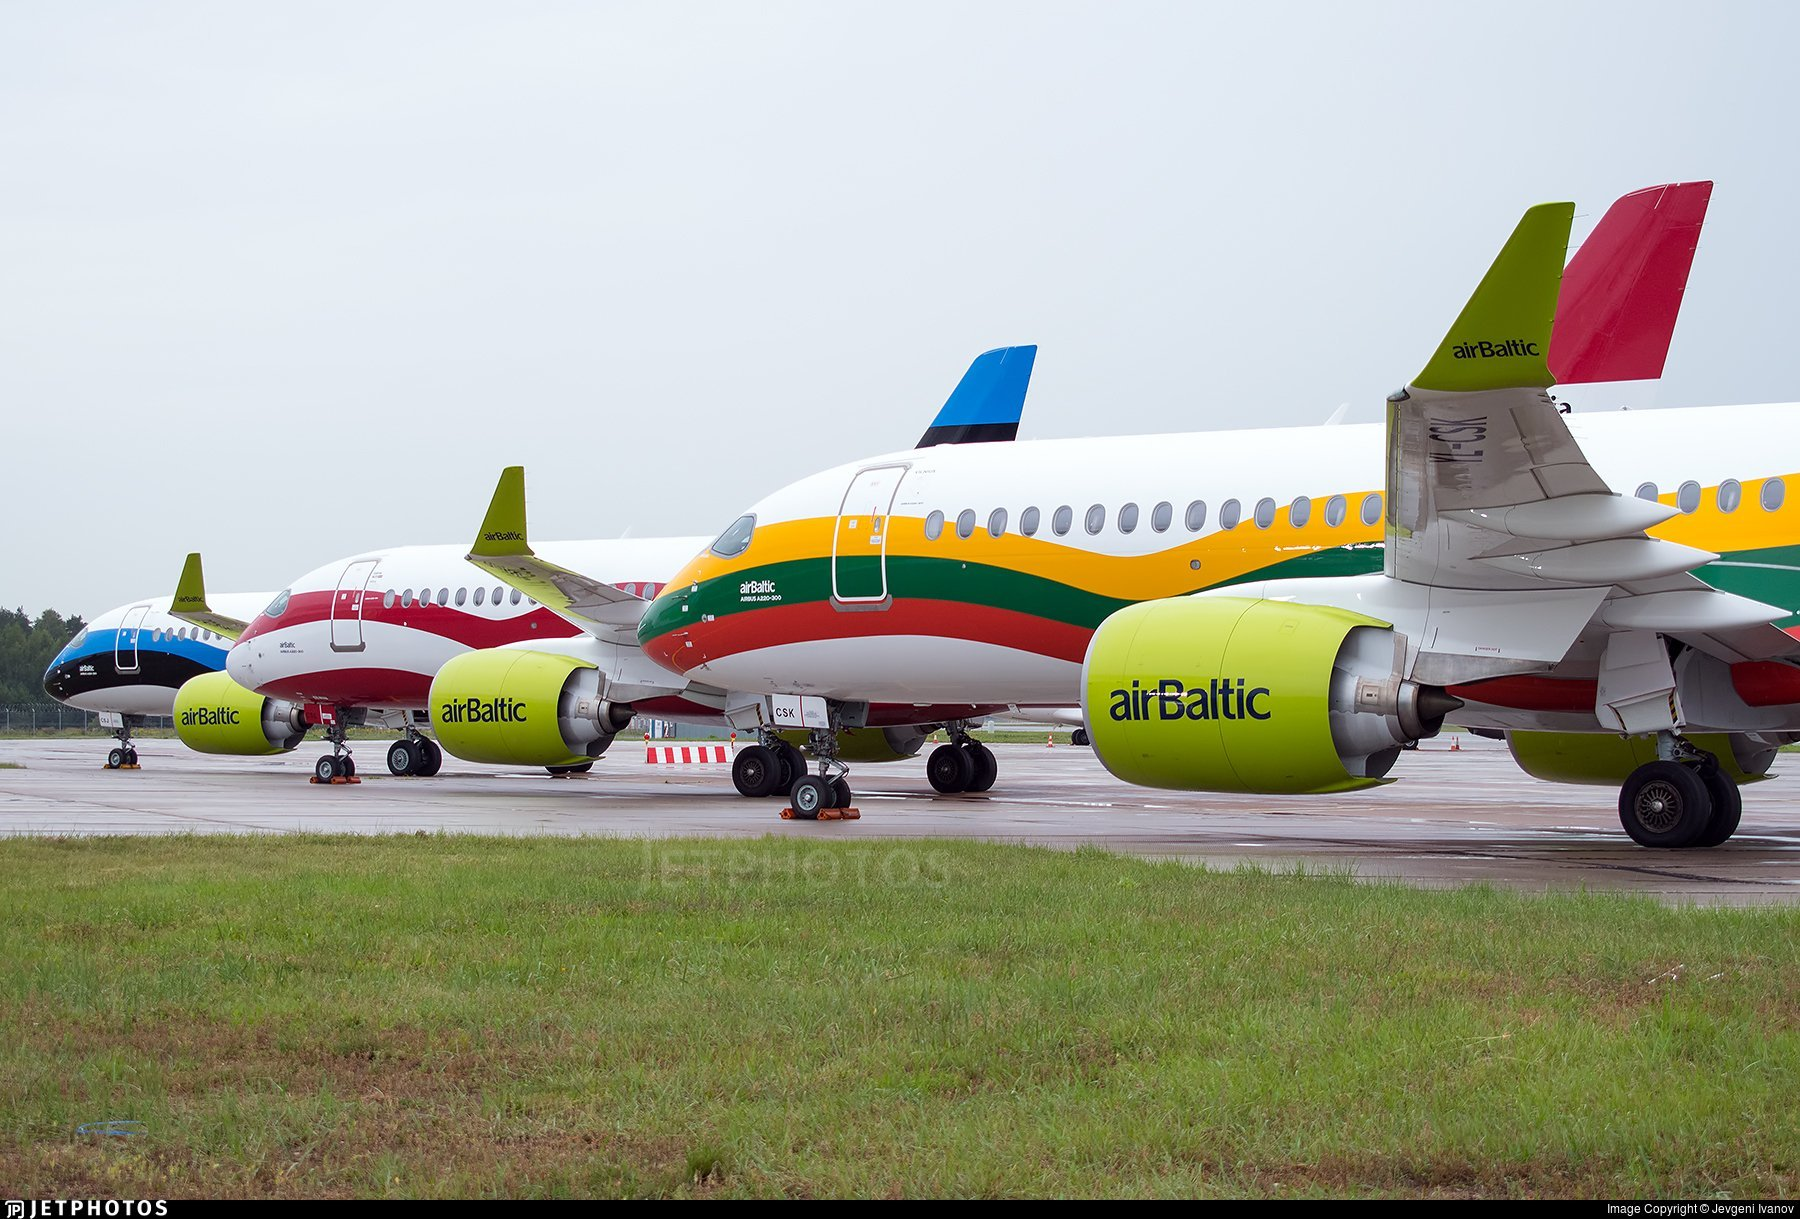 Air Baltic special livery A220s